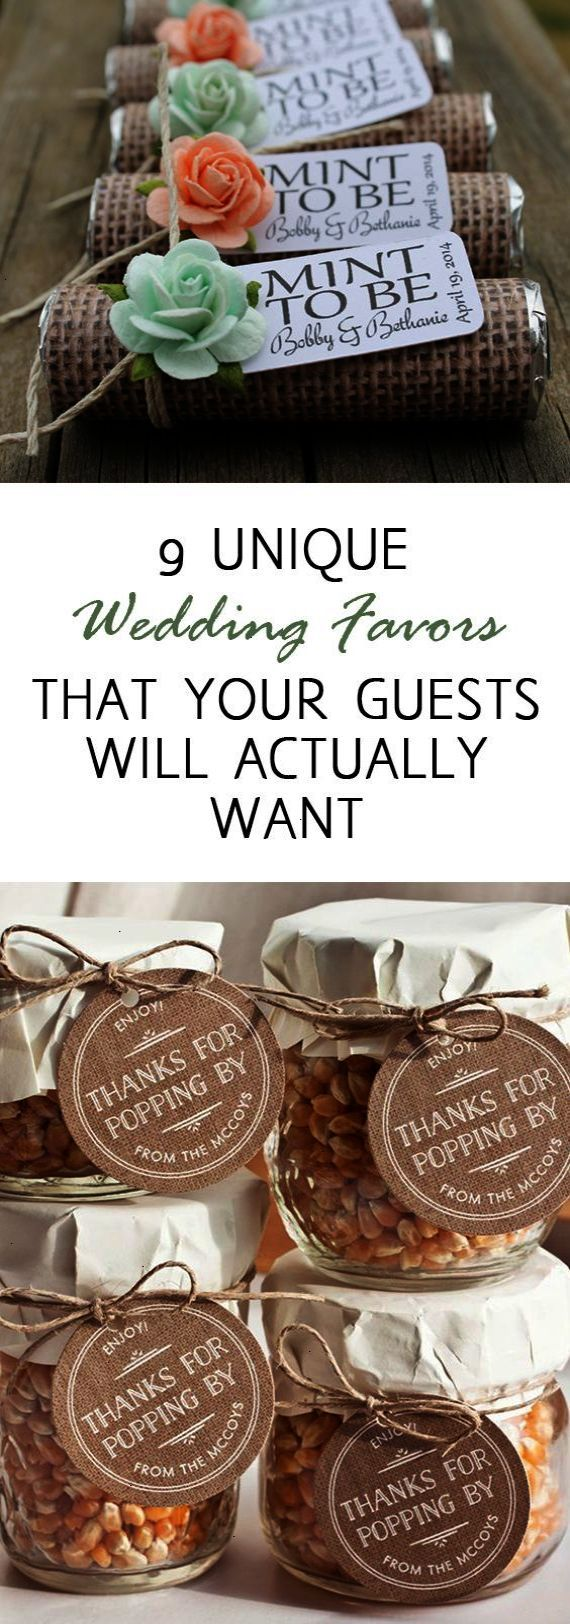 Love the uthanks for popping byu ones wedding favors wedding favor